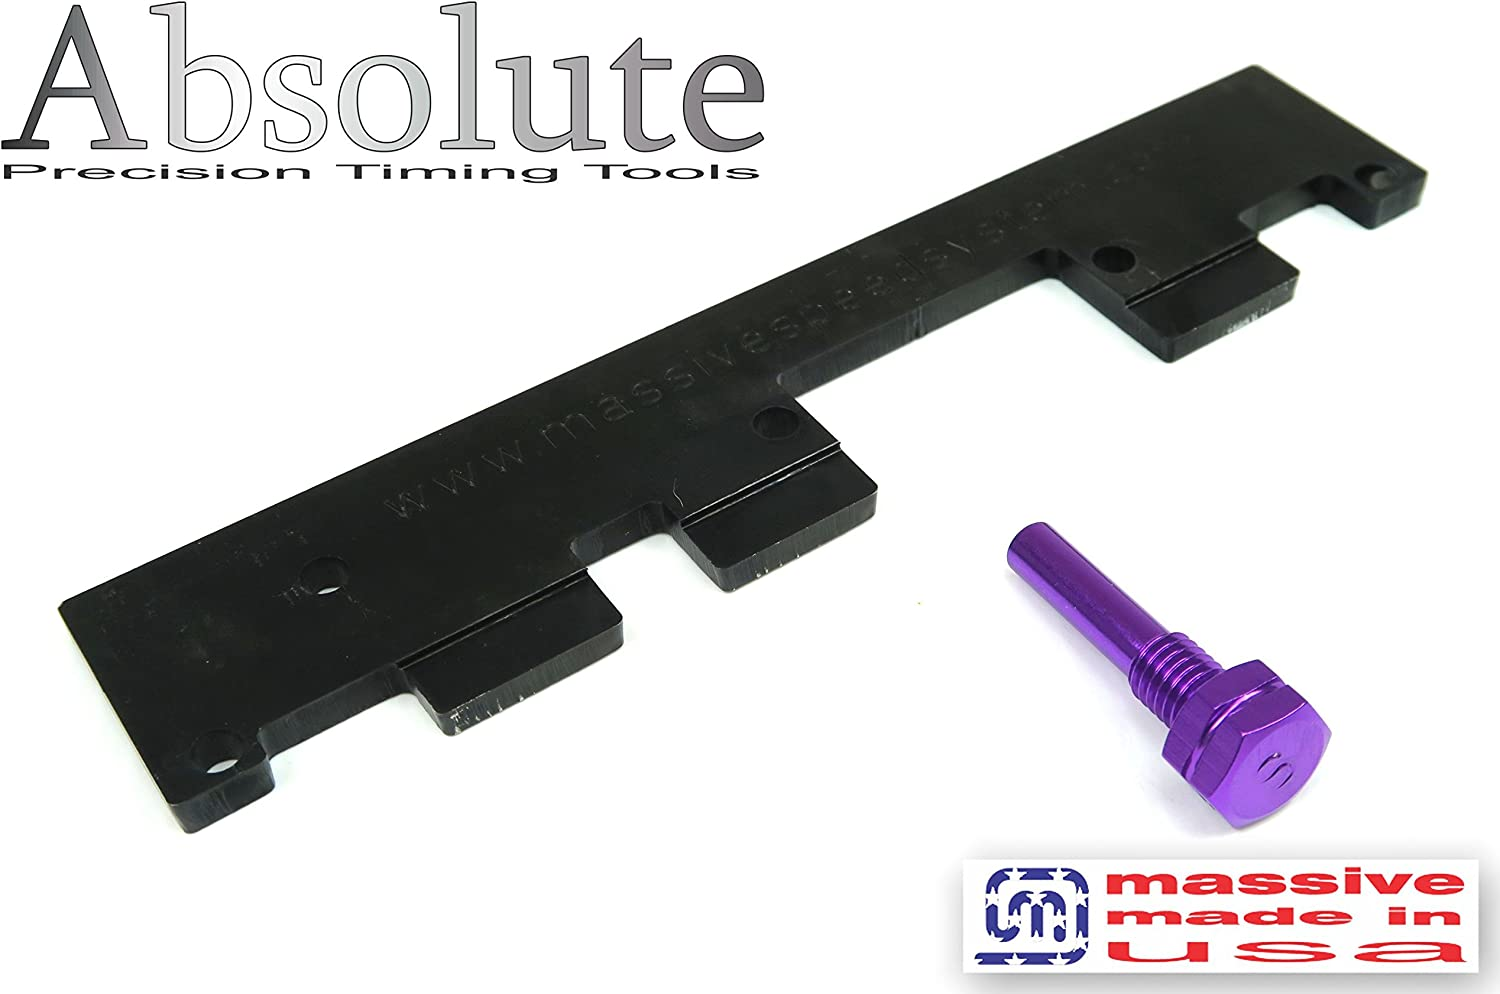 Massive Absolute Precision Cam Timing Tool Set Ford//Mazda Zetec Duratec and MZR Engines 2.0 2.3 2.5 Focus Fusion Escape Ranger Mazda 3 5 6 Miata MX-5 Turbo DISI Mazdaspeed 3 6 CX-7 Direct Injected